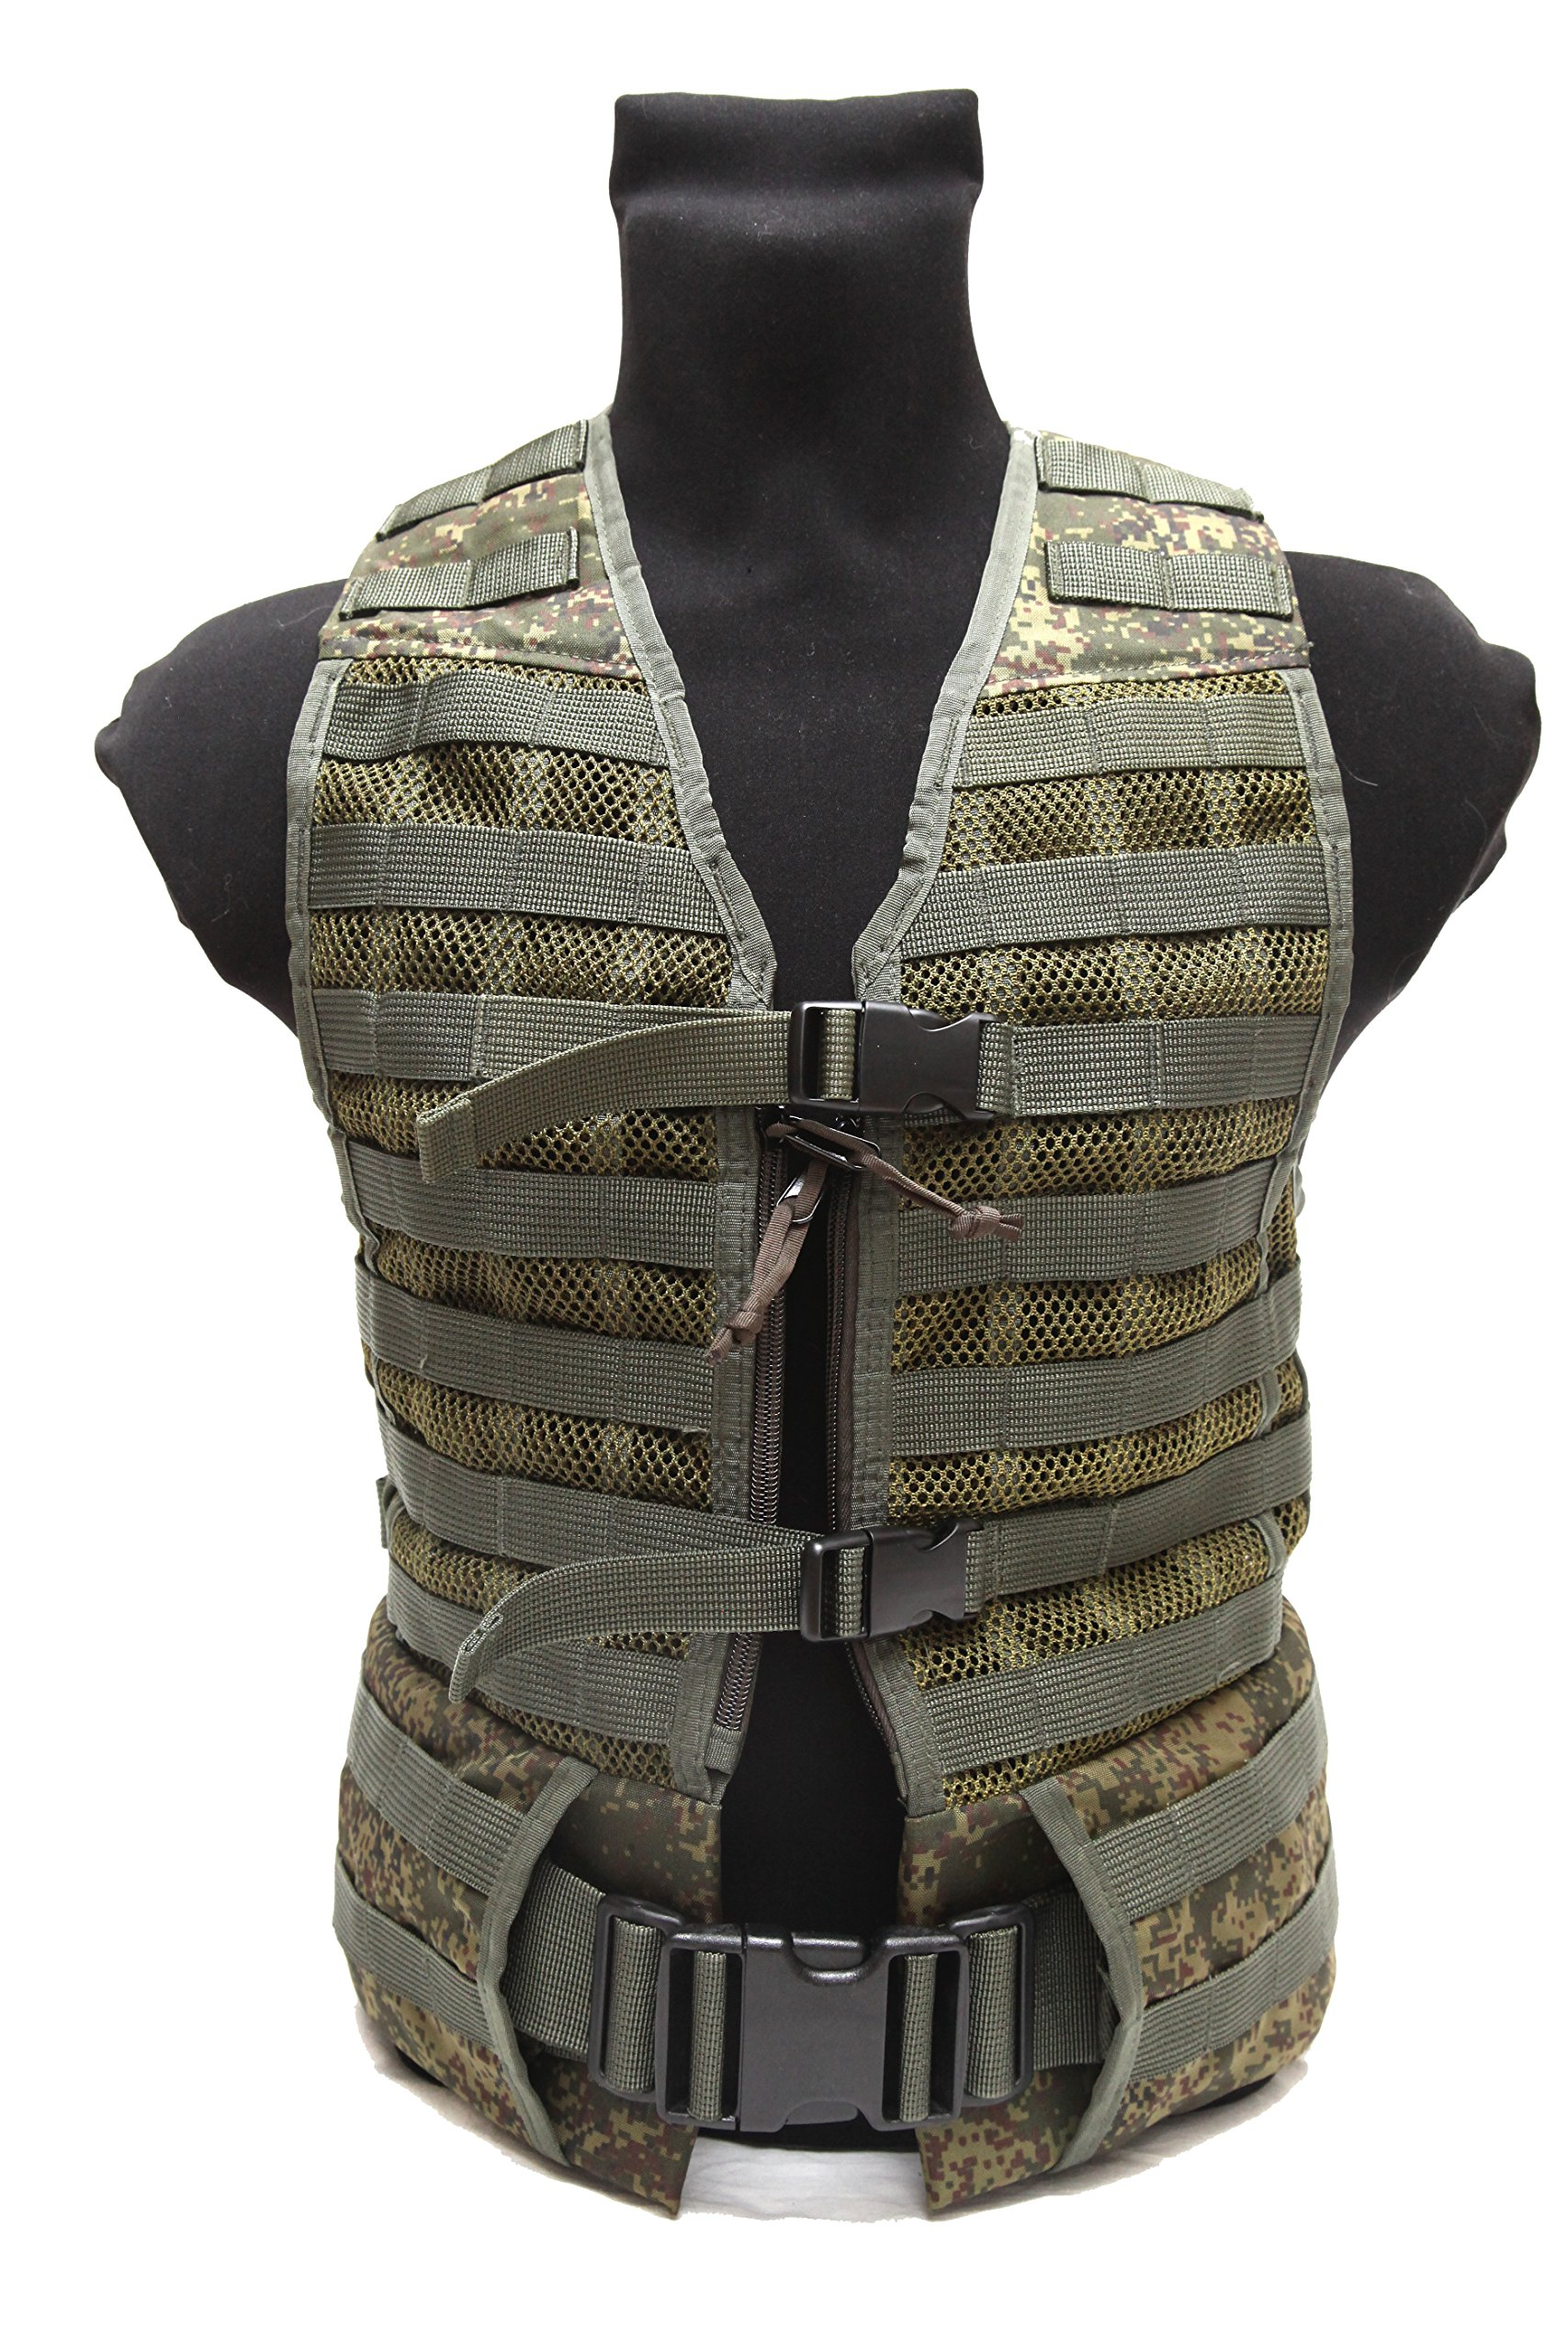 Tactical army military Russian 6sh117 assault vest EMR digital flora by Techincom